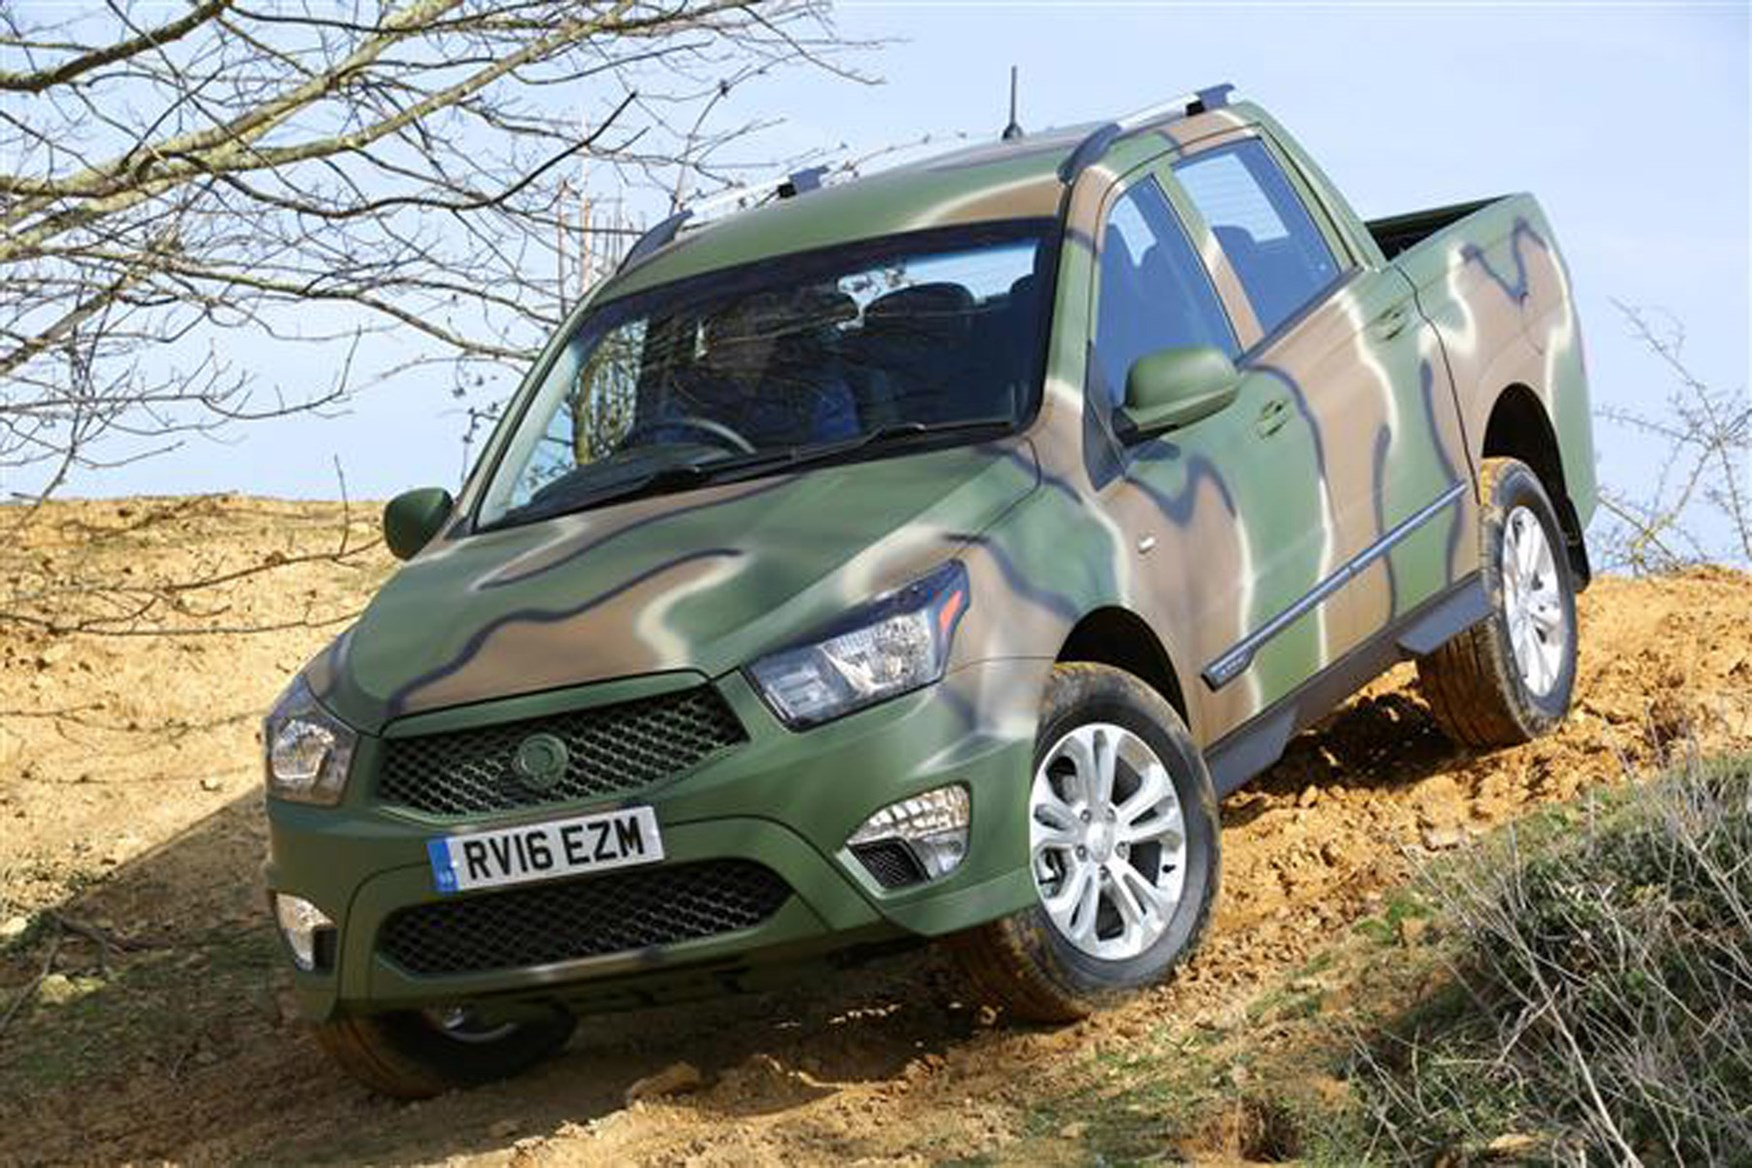 SsangYong Korando Sports review on Parkers Vans - DMZ edition exterior